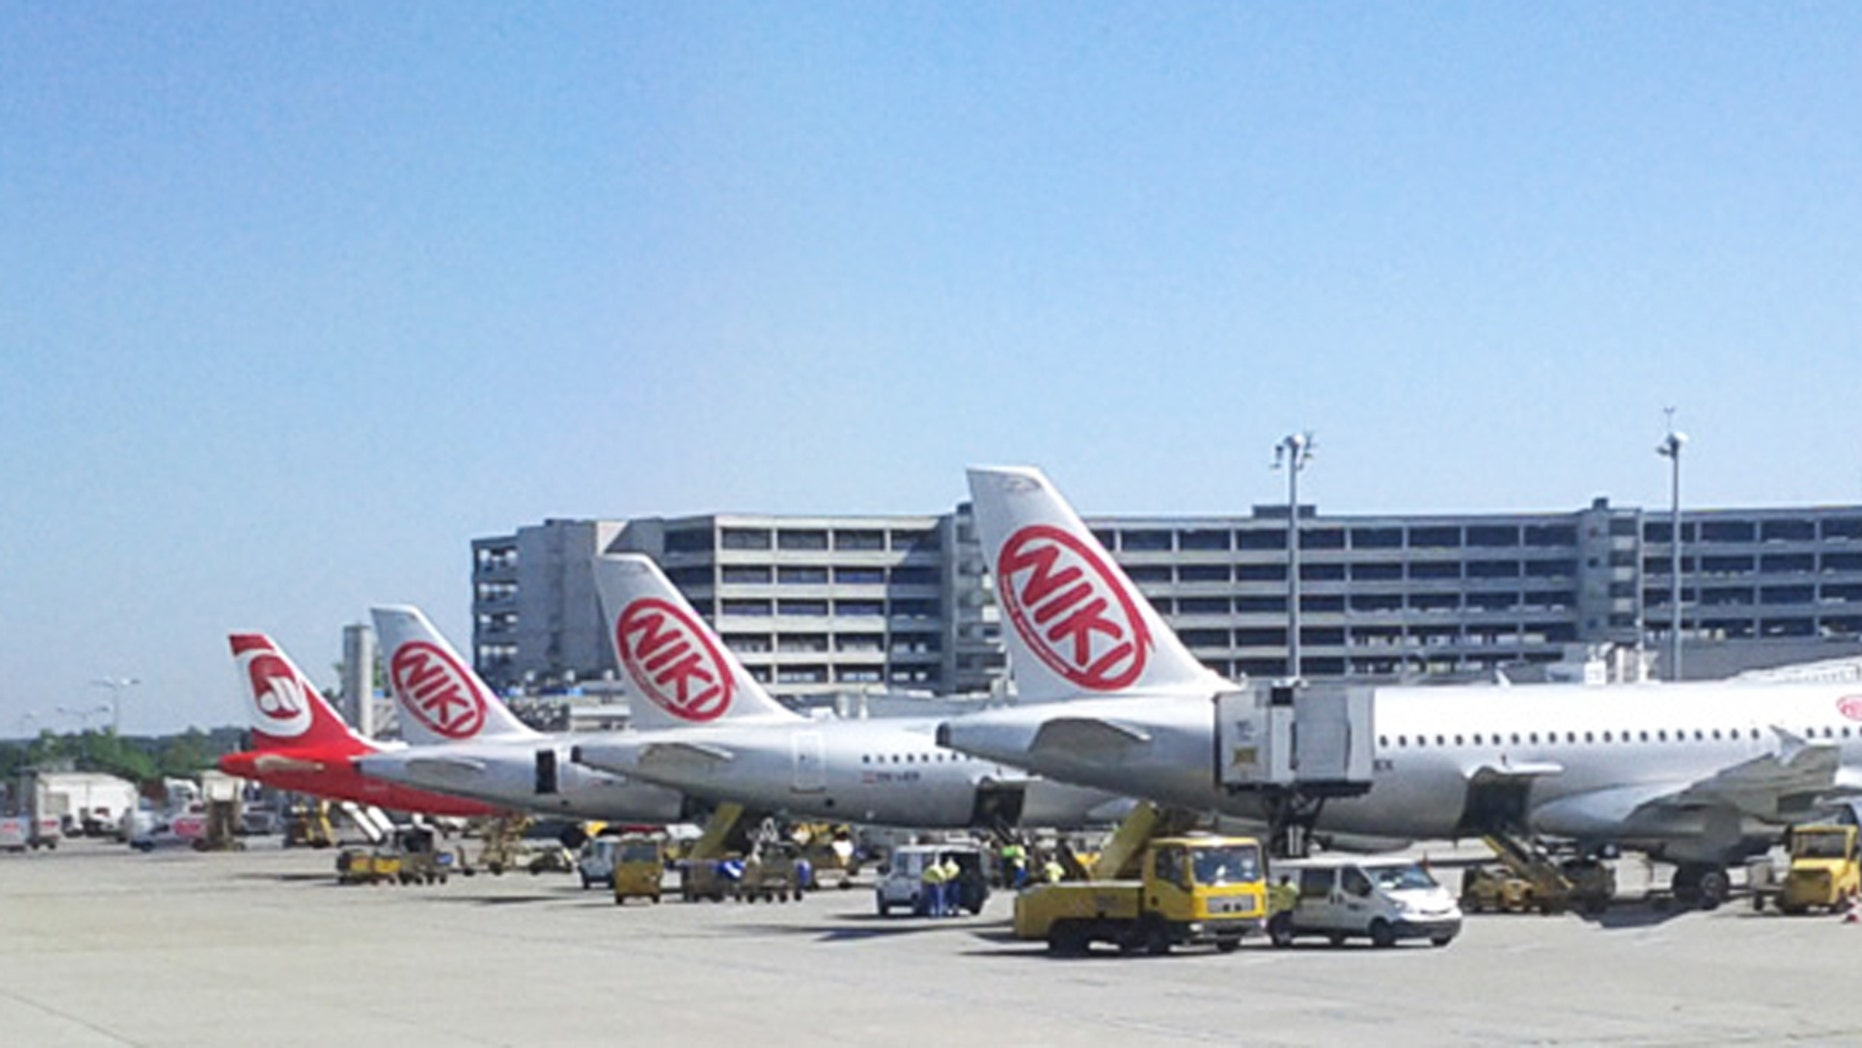 The low cost carrier is a subsidiary of Airberlin.